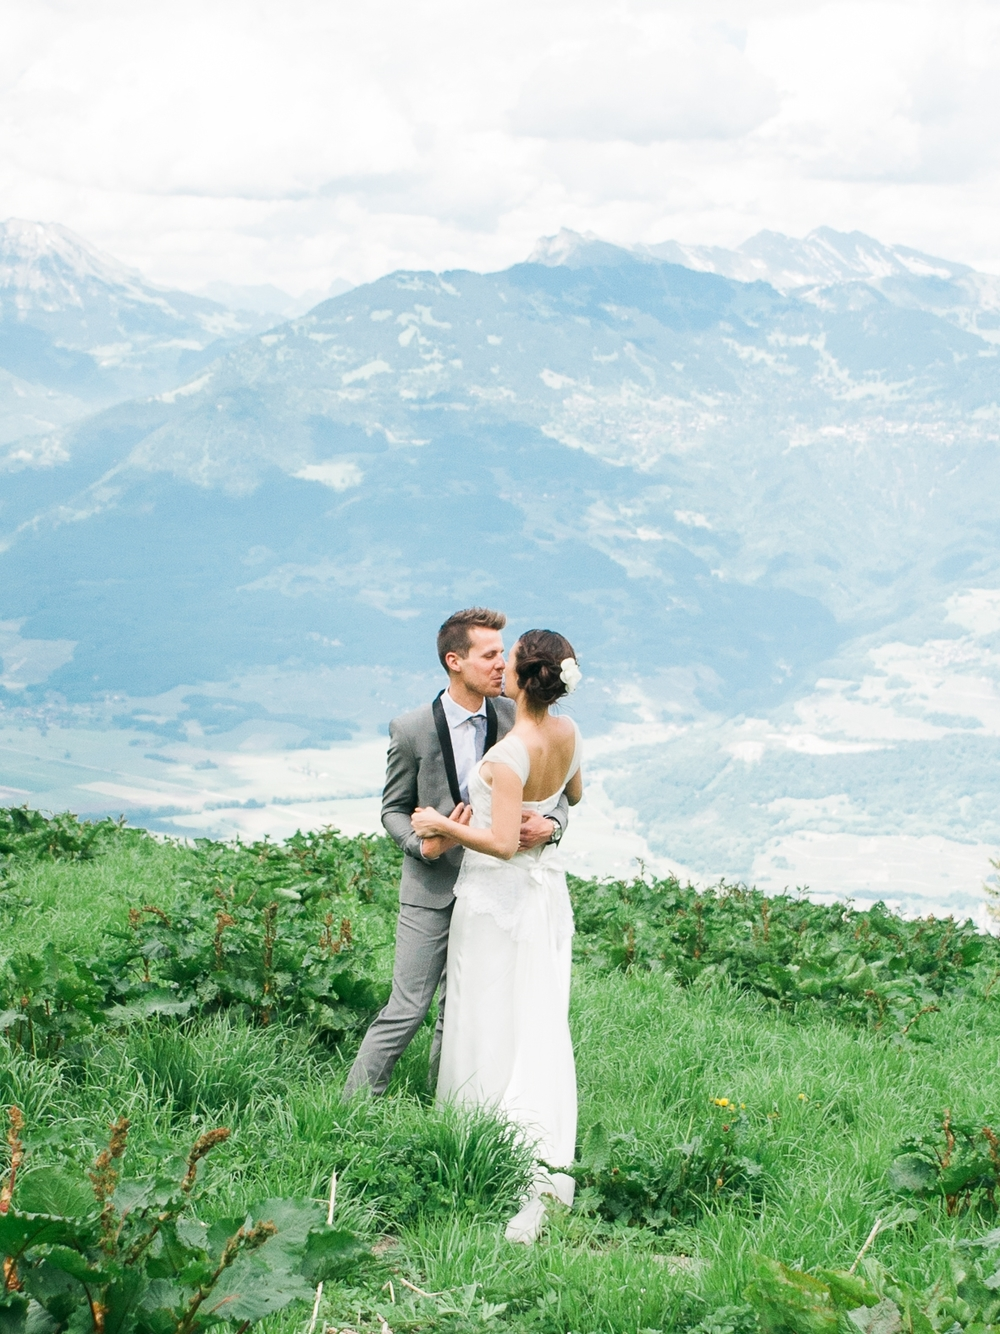 celine-chhuon-switzerland_rustic_wedding46-3.jpg